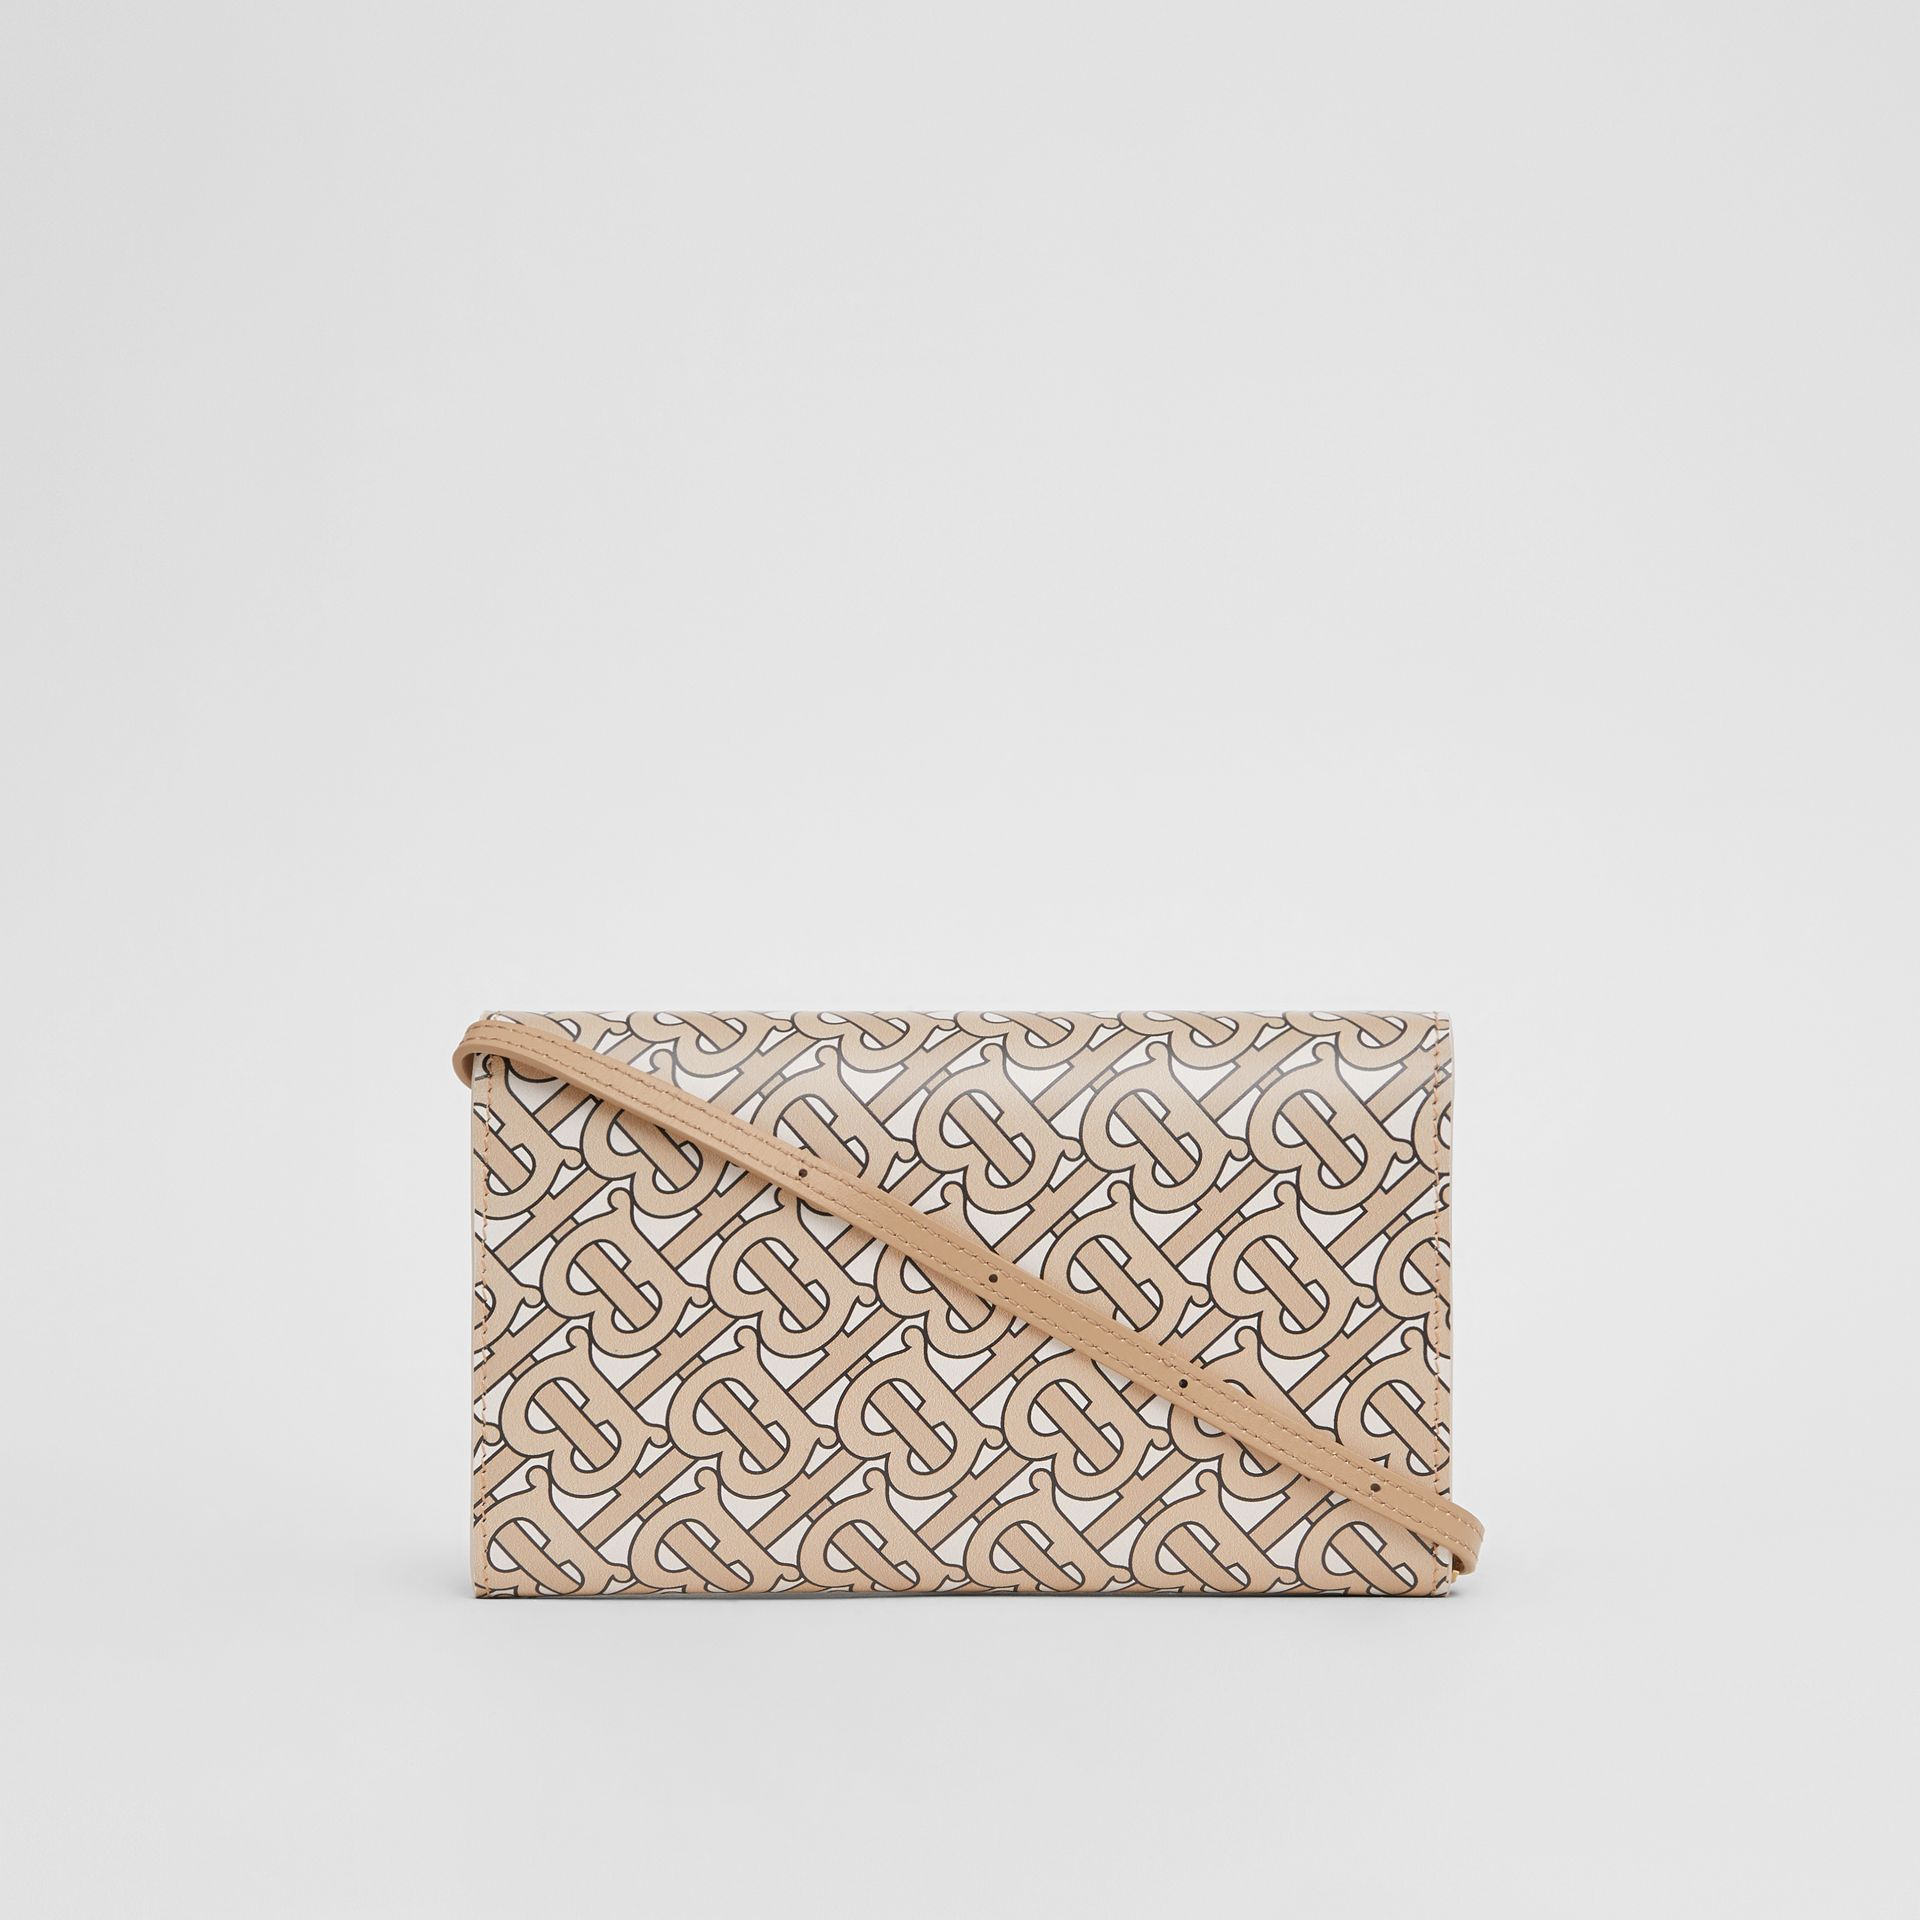 Monogram Print Leather Wallet with Detachable Strap in Beige - Women | Burberry United Kingdom - gallery image 7